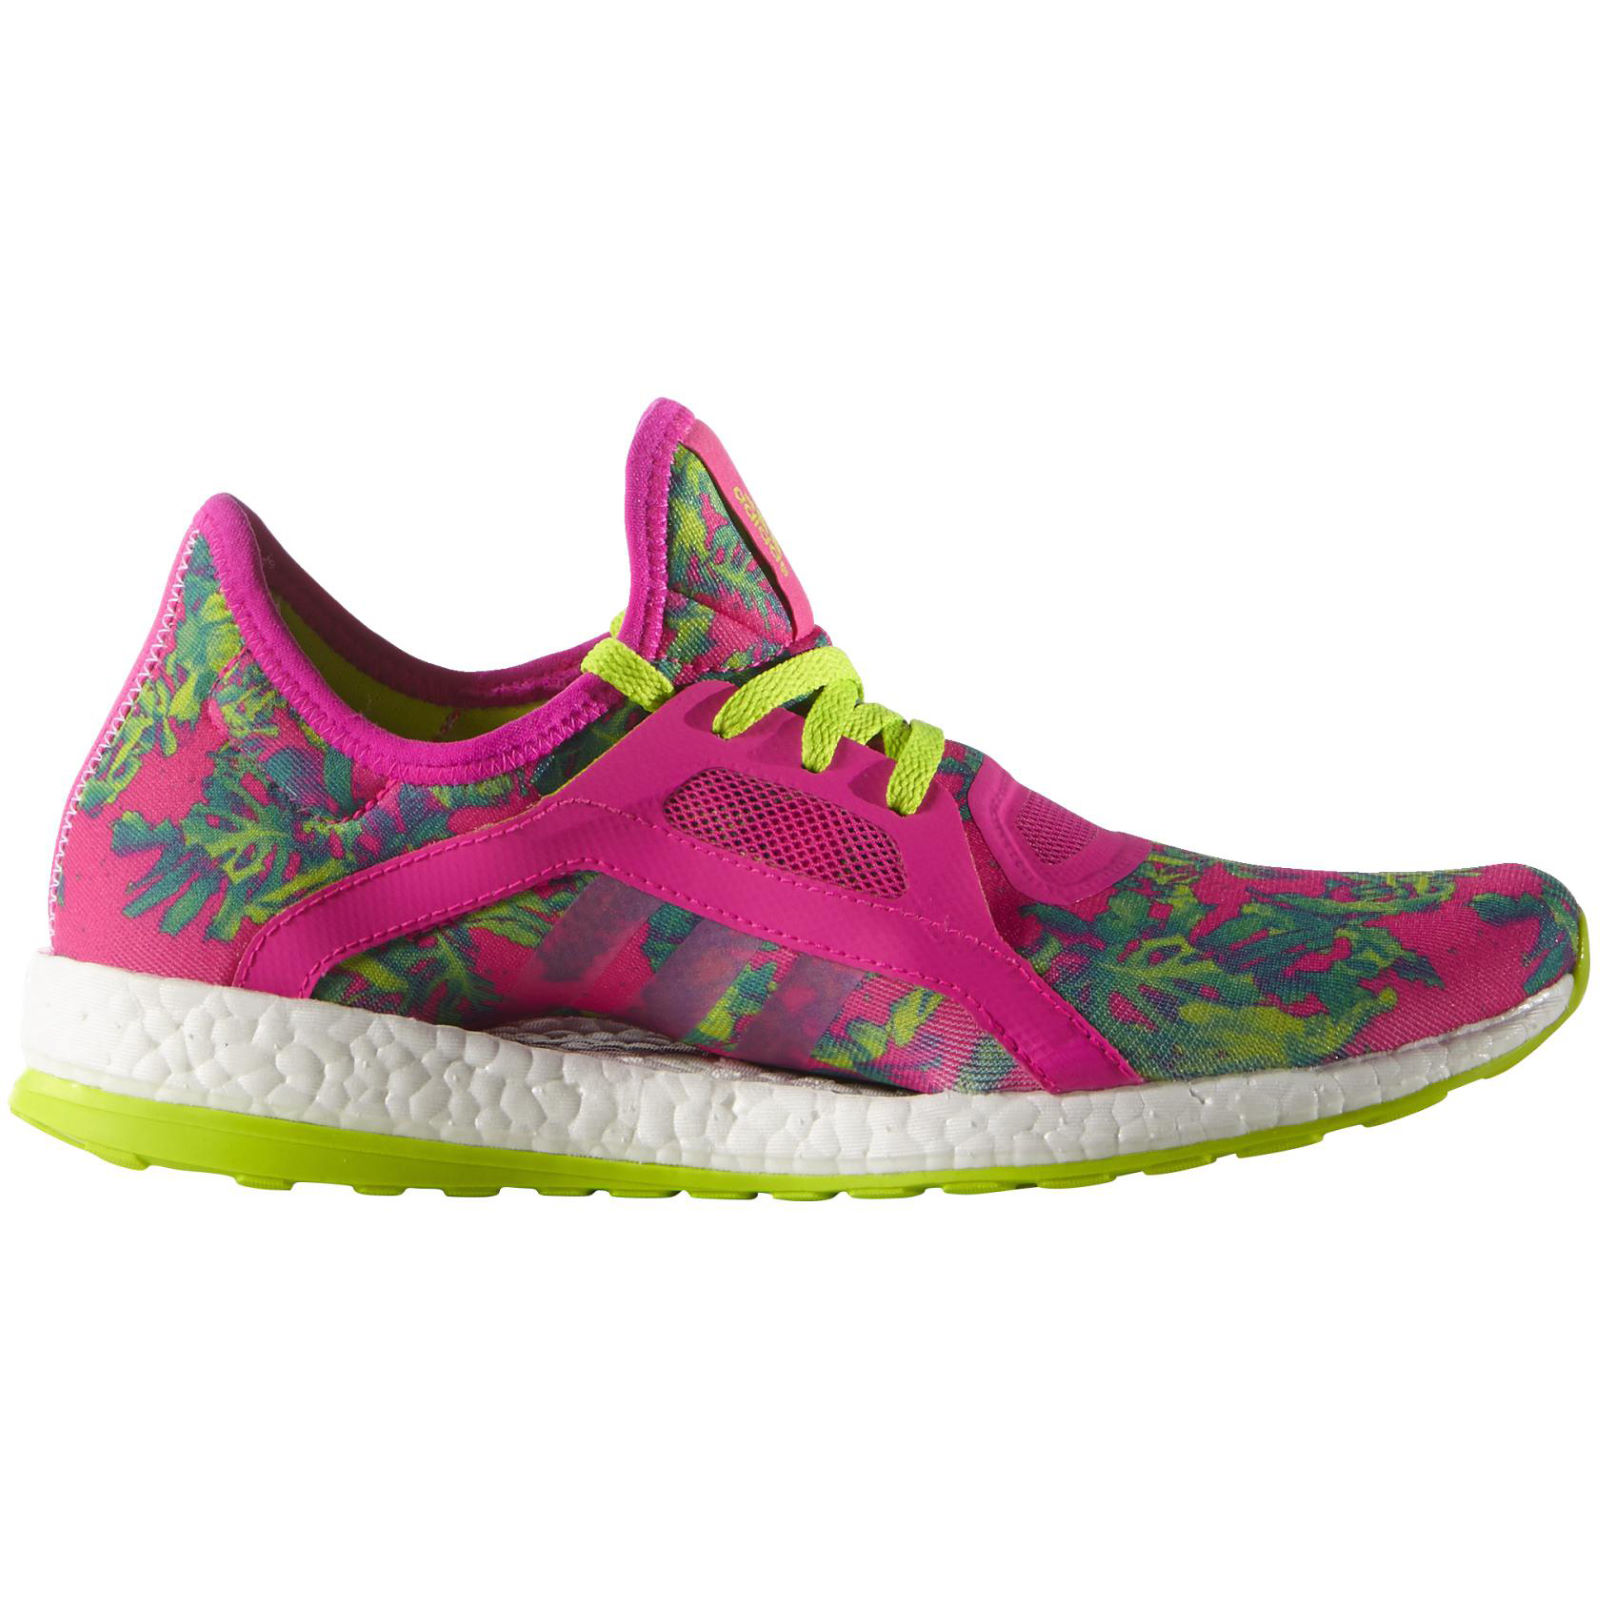 Adidas Women S Pure Boost X Shoes Pink Slime Ss